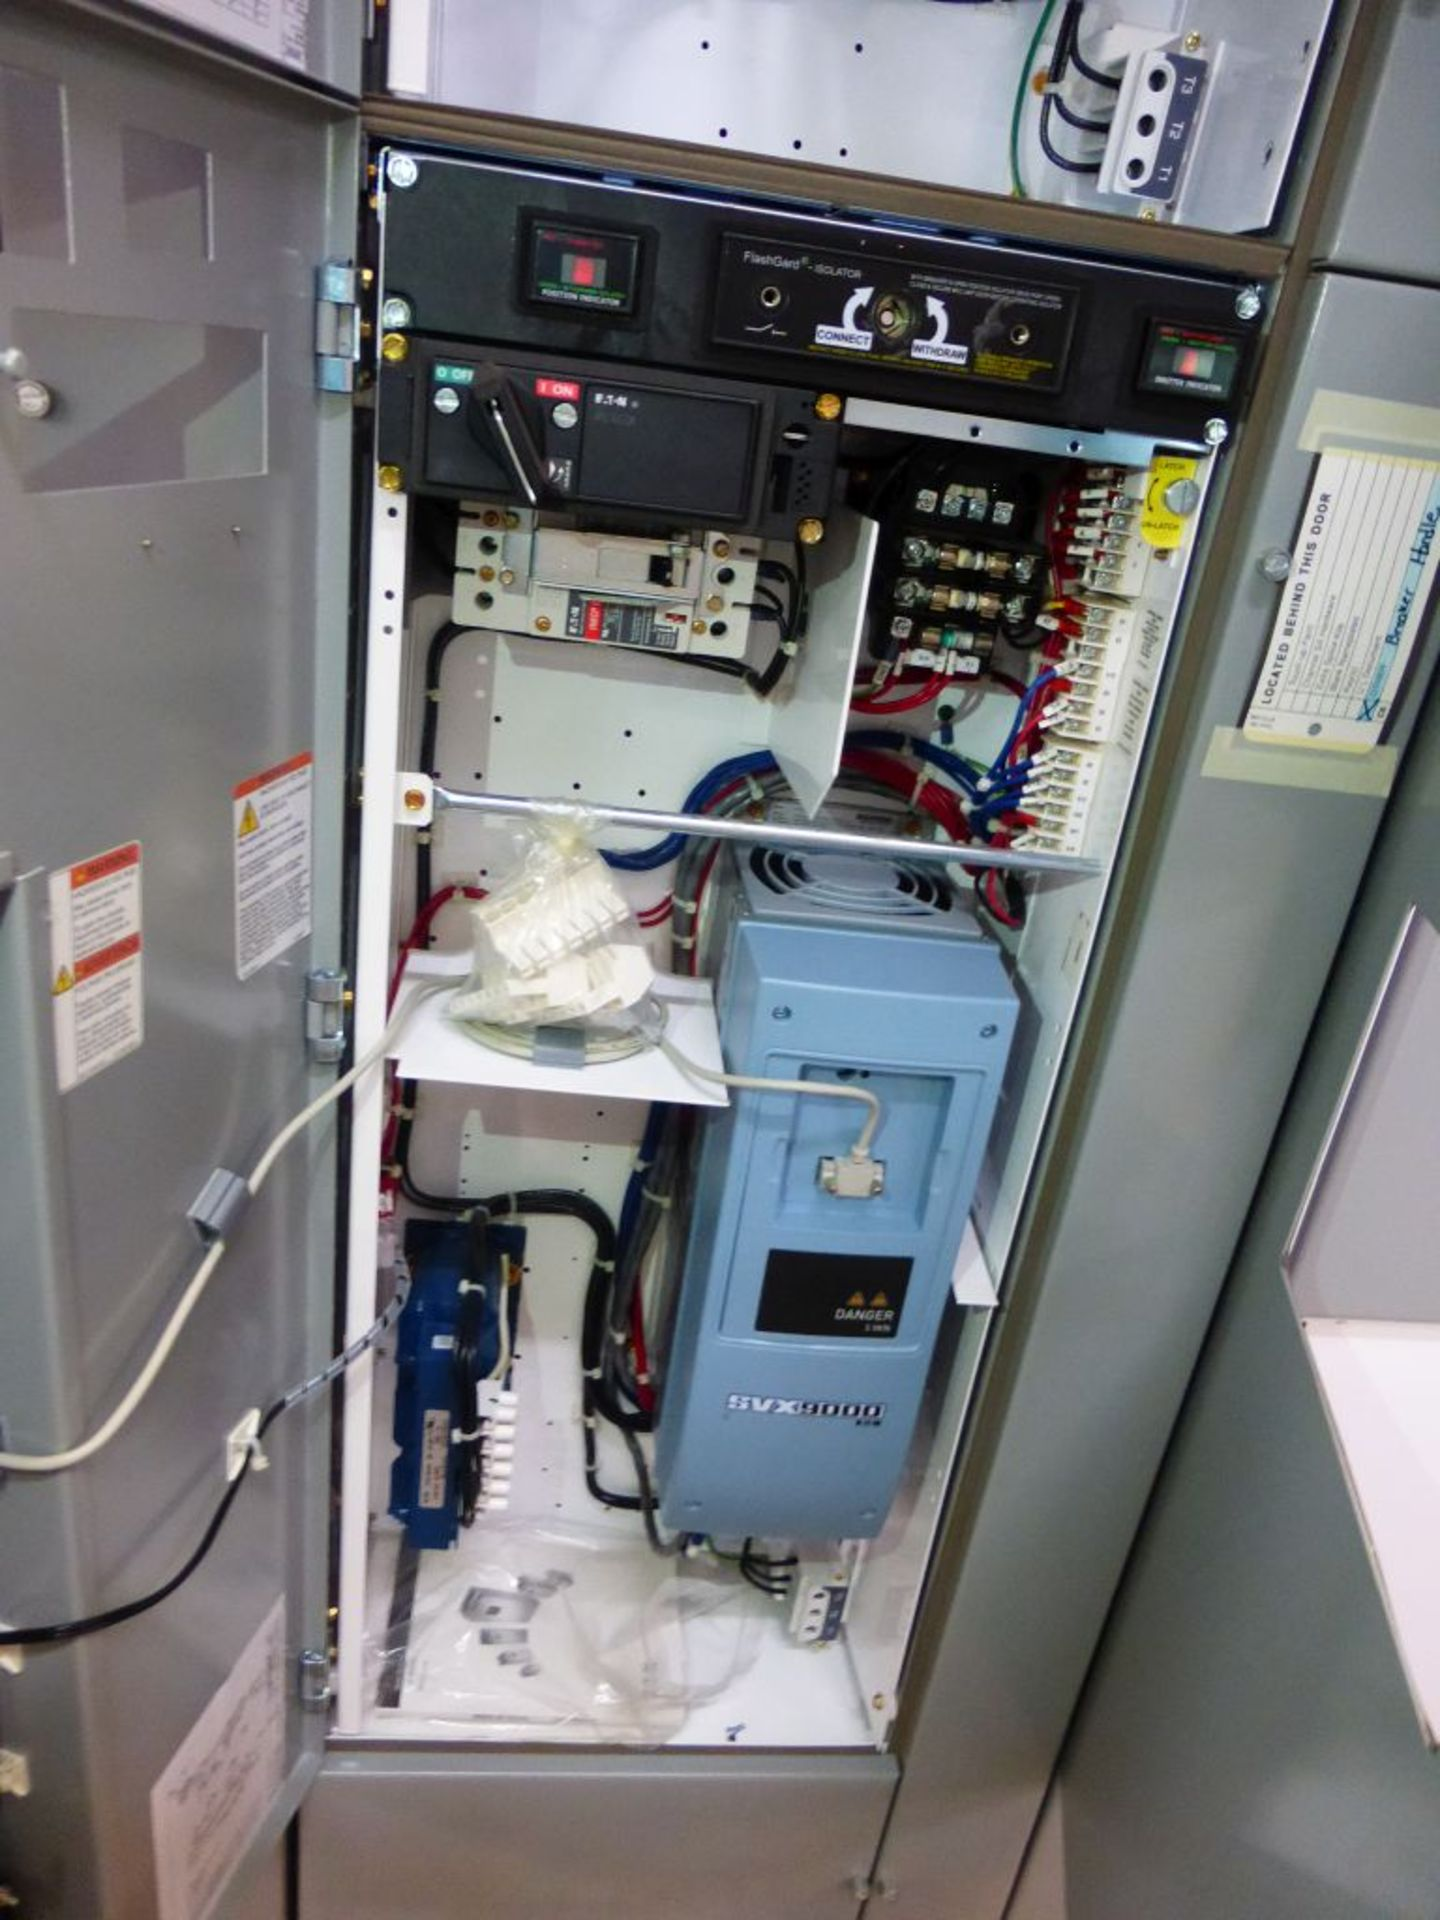 Eaton Freedom 2100 Series Motor Control Center   (4) SVX900-30A, with Eaton AF Drives, SVX9000, - Image 59 of 60